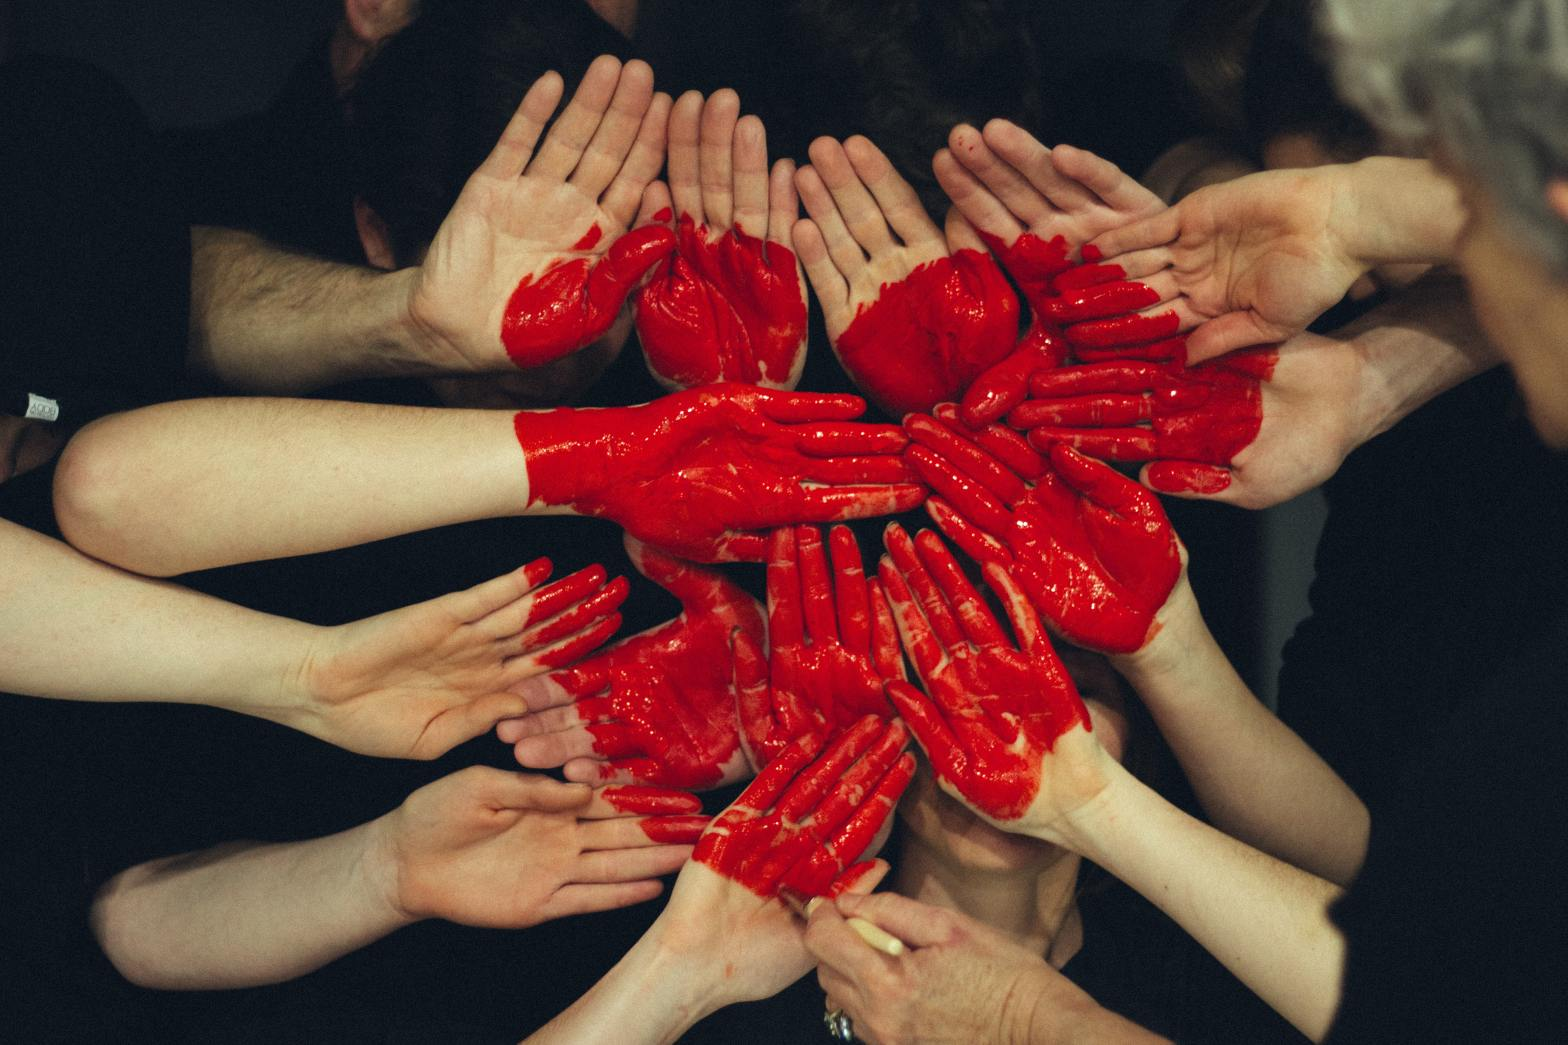 A group of people place their hands together, all palms facing outward, as another hand with a paintbrush paints a red heart shape over their hovering hands.